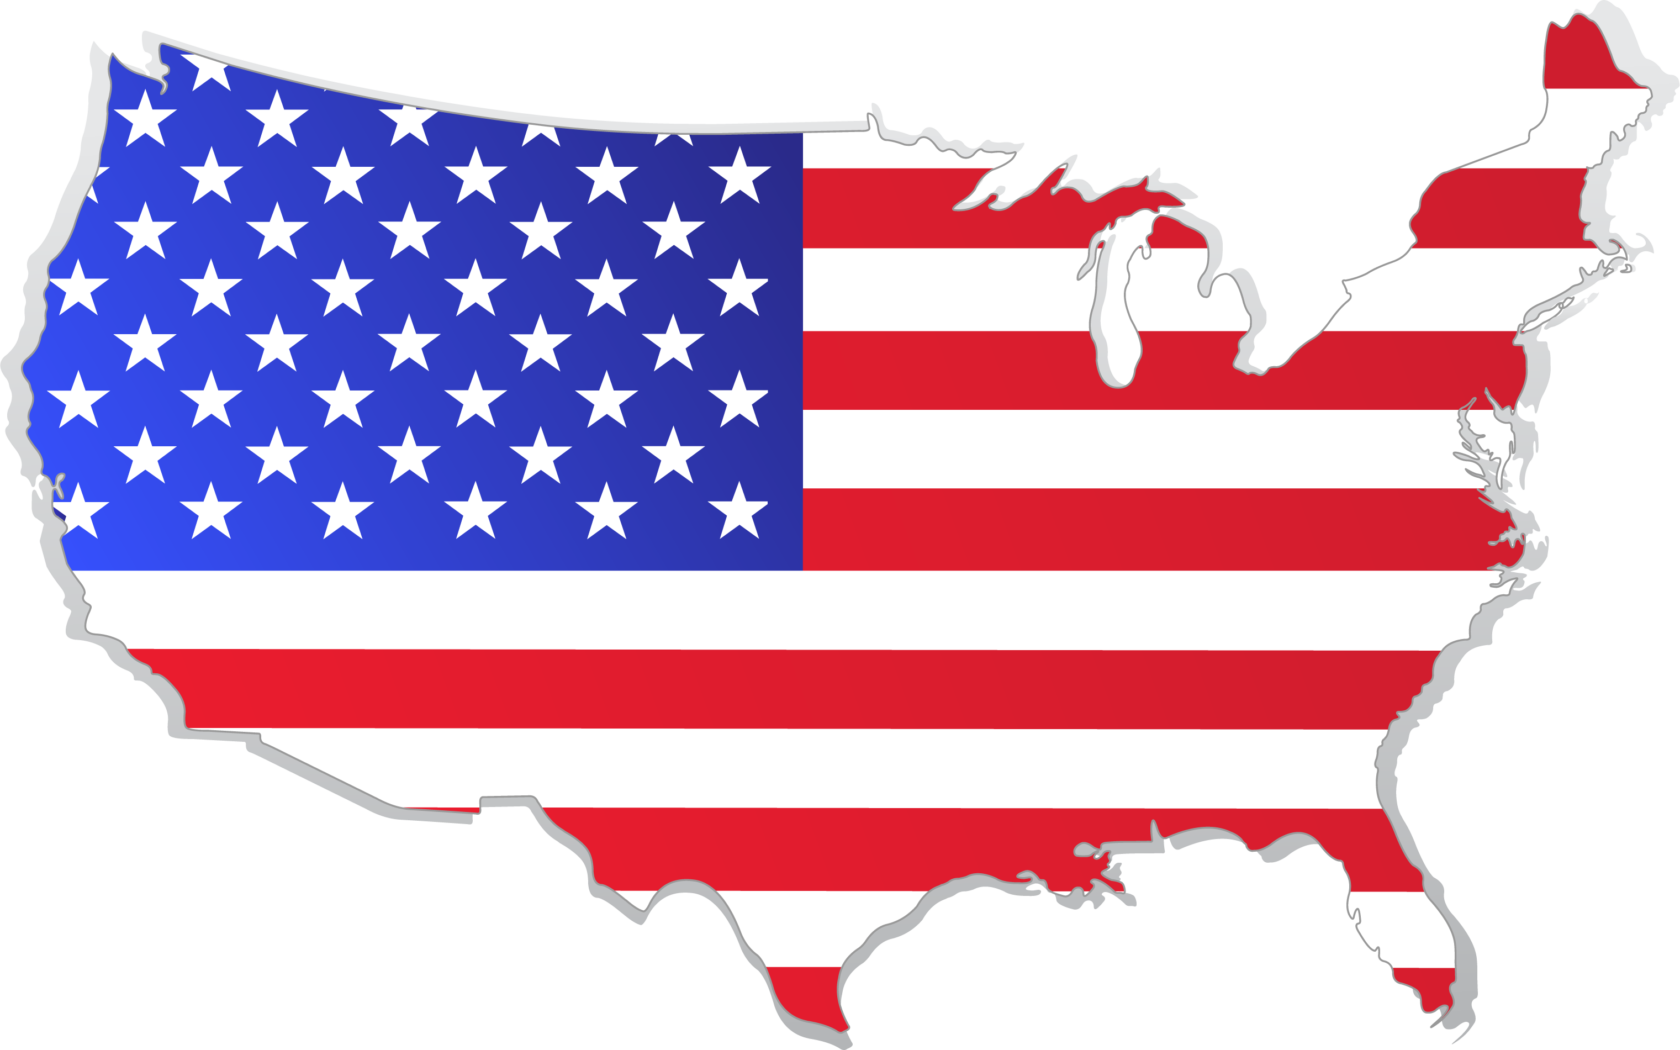 usa map with flag [Converted]